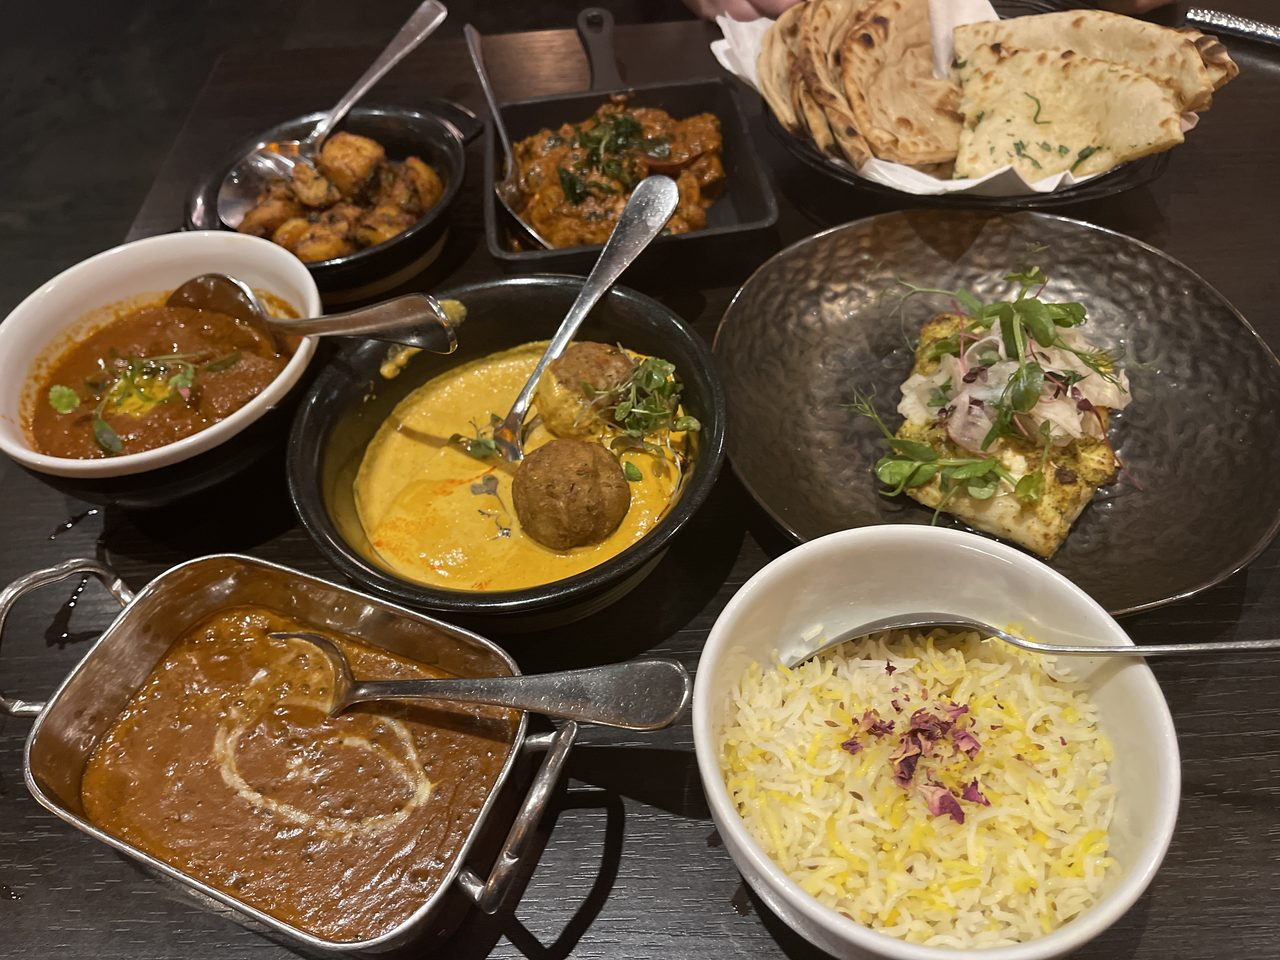 Dishes from the Grand Trunk Road menu